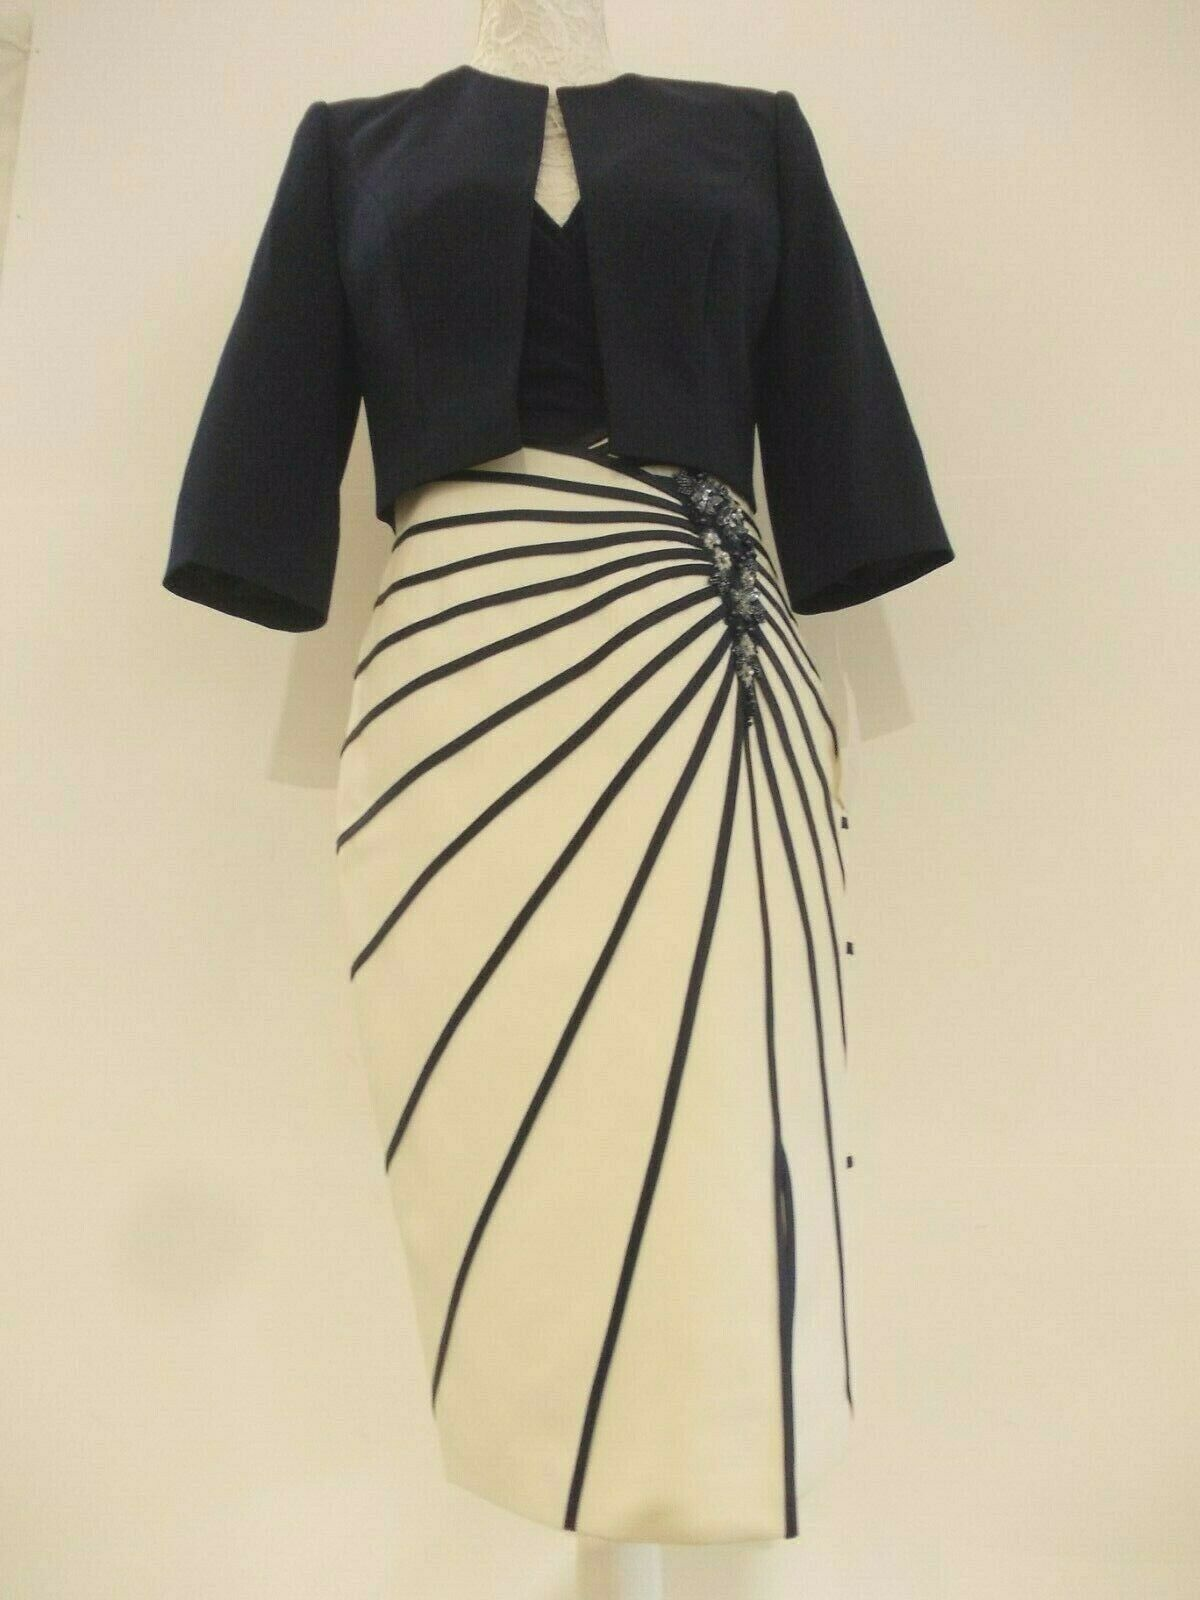 Special occasion/mother of the bride dress suit & mask size 8 in Ivory & Navy